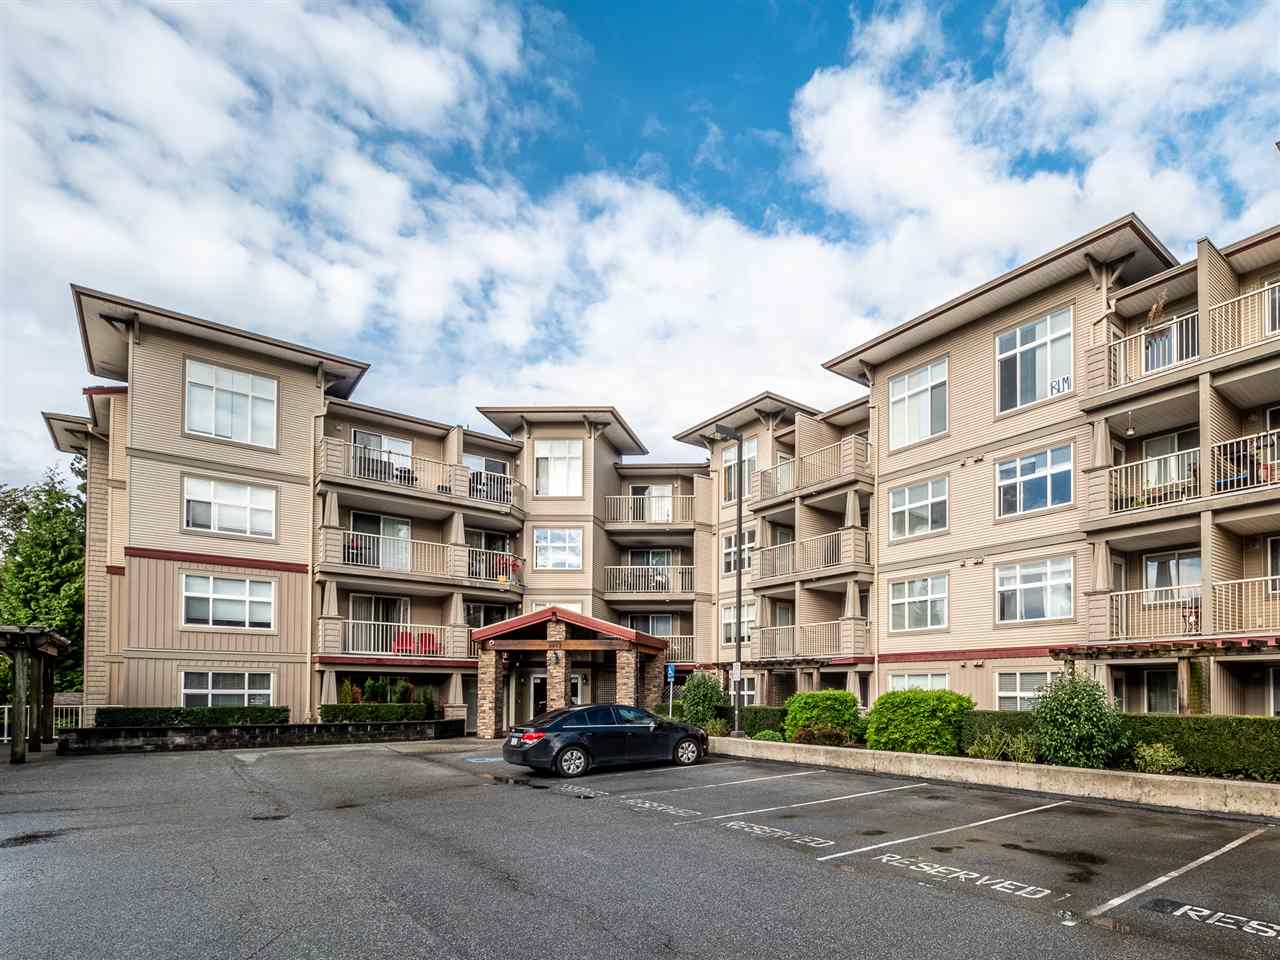 301 2515 PARK DRIVE - Central Abbotsford Apartment/Condo for sale, 1 Bedroom (R2508641) - #1